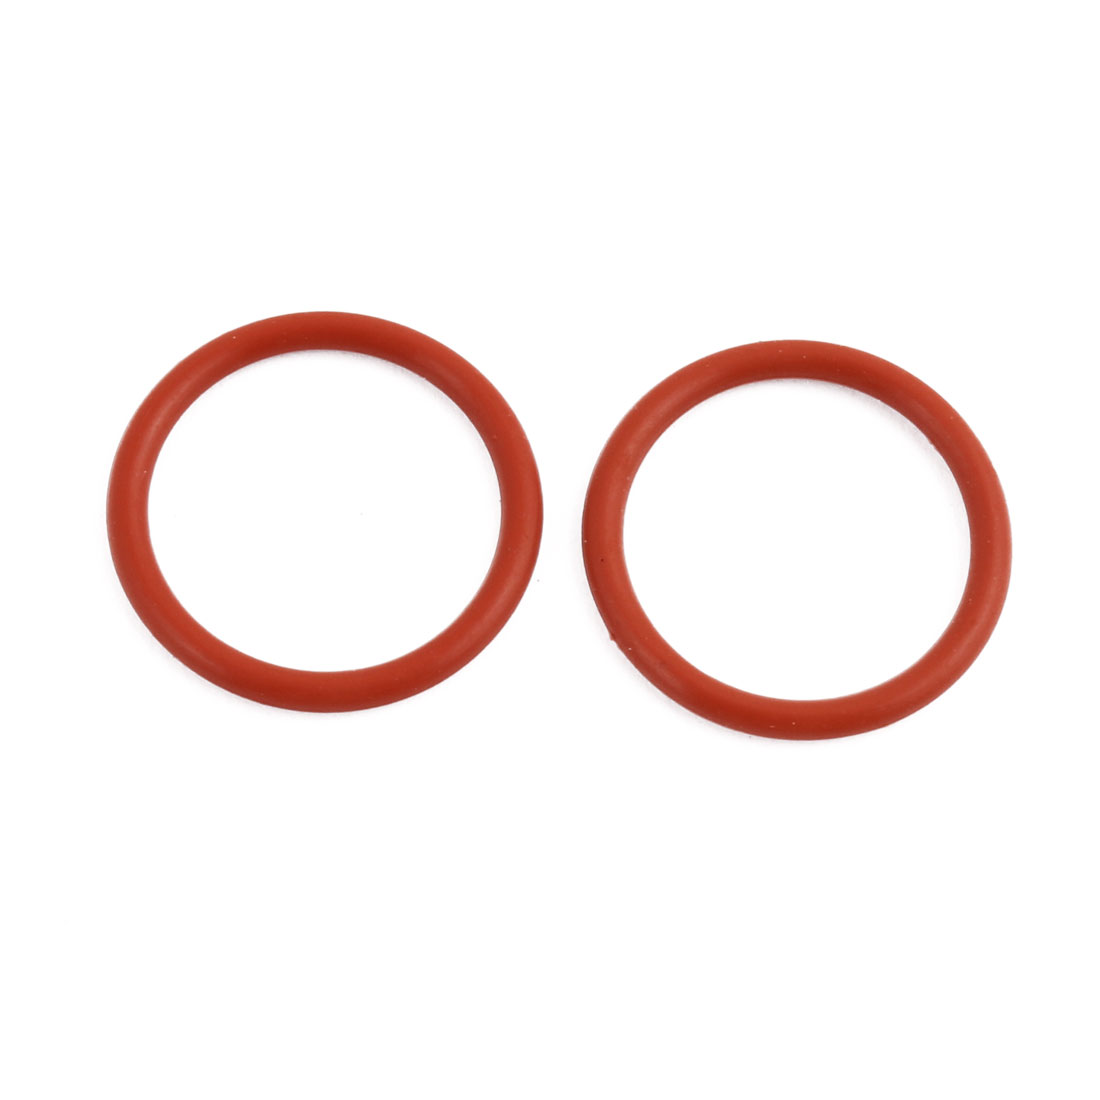 2Pcs Red Round Nitrile Butadiene Rubber NBR O-Ring 20mm OD 1.9mm Width